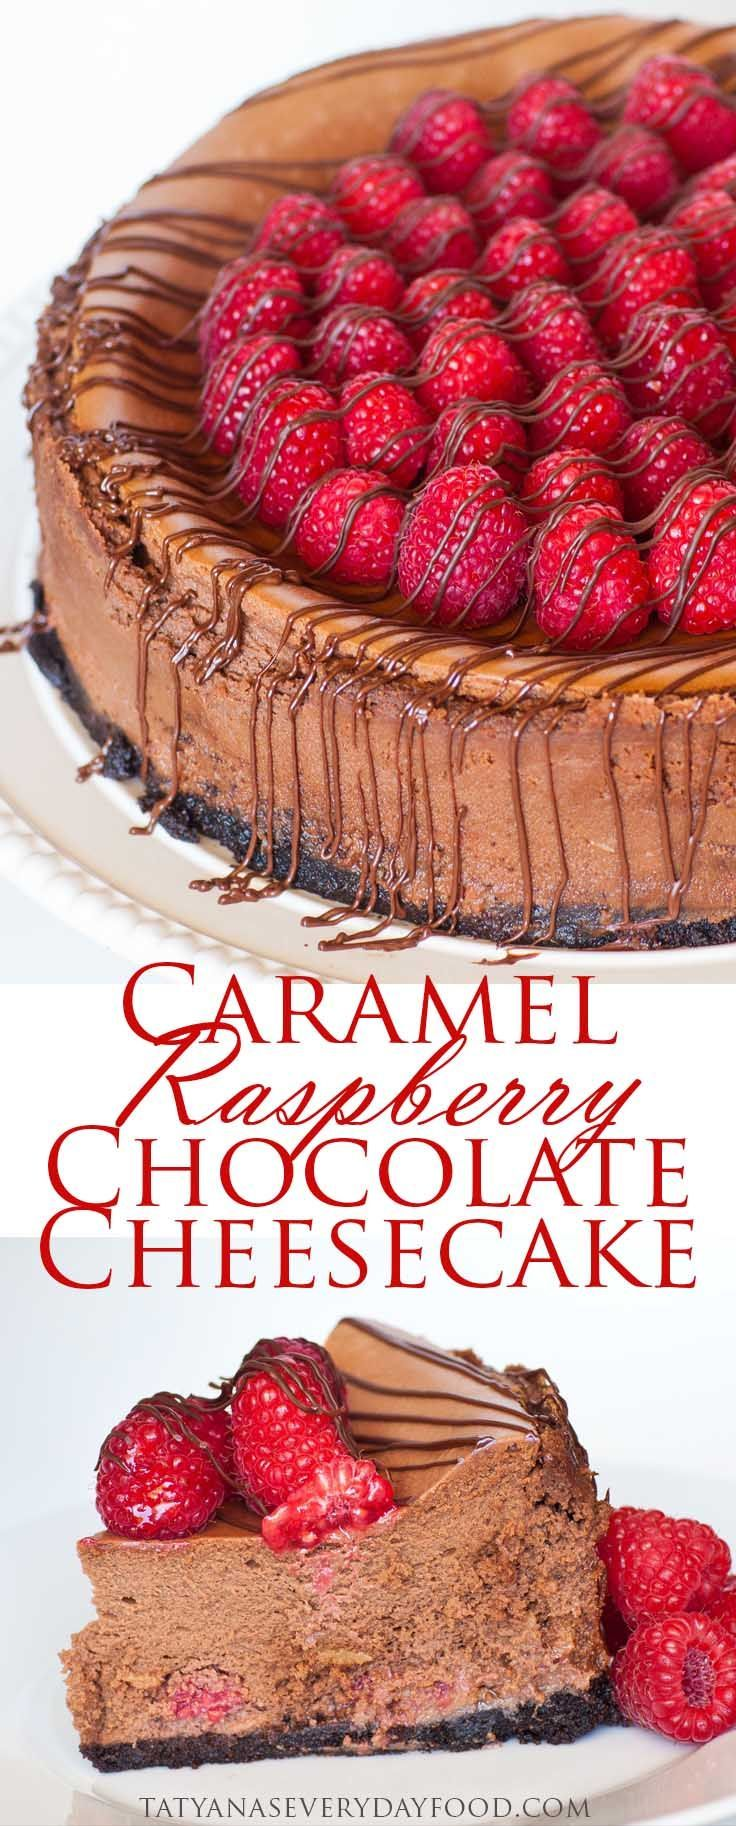 Caramel Raspberry Chocolate Cheesecake with video recipe {Tatyana's Everyday Food}